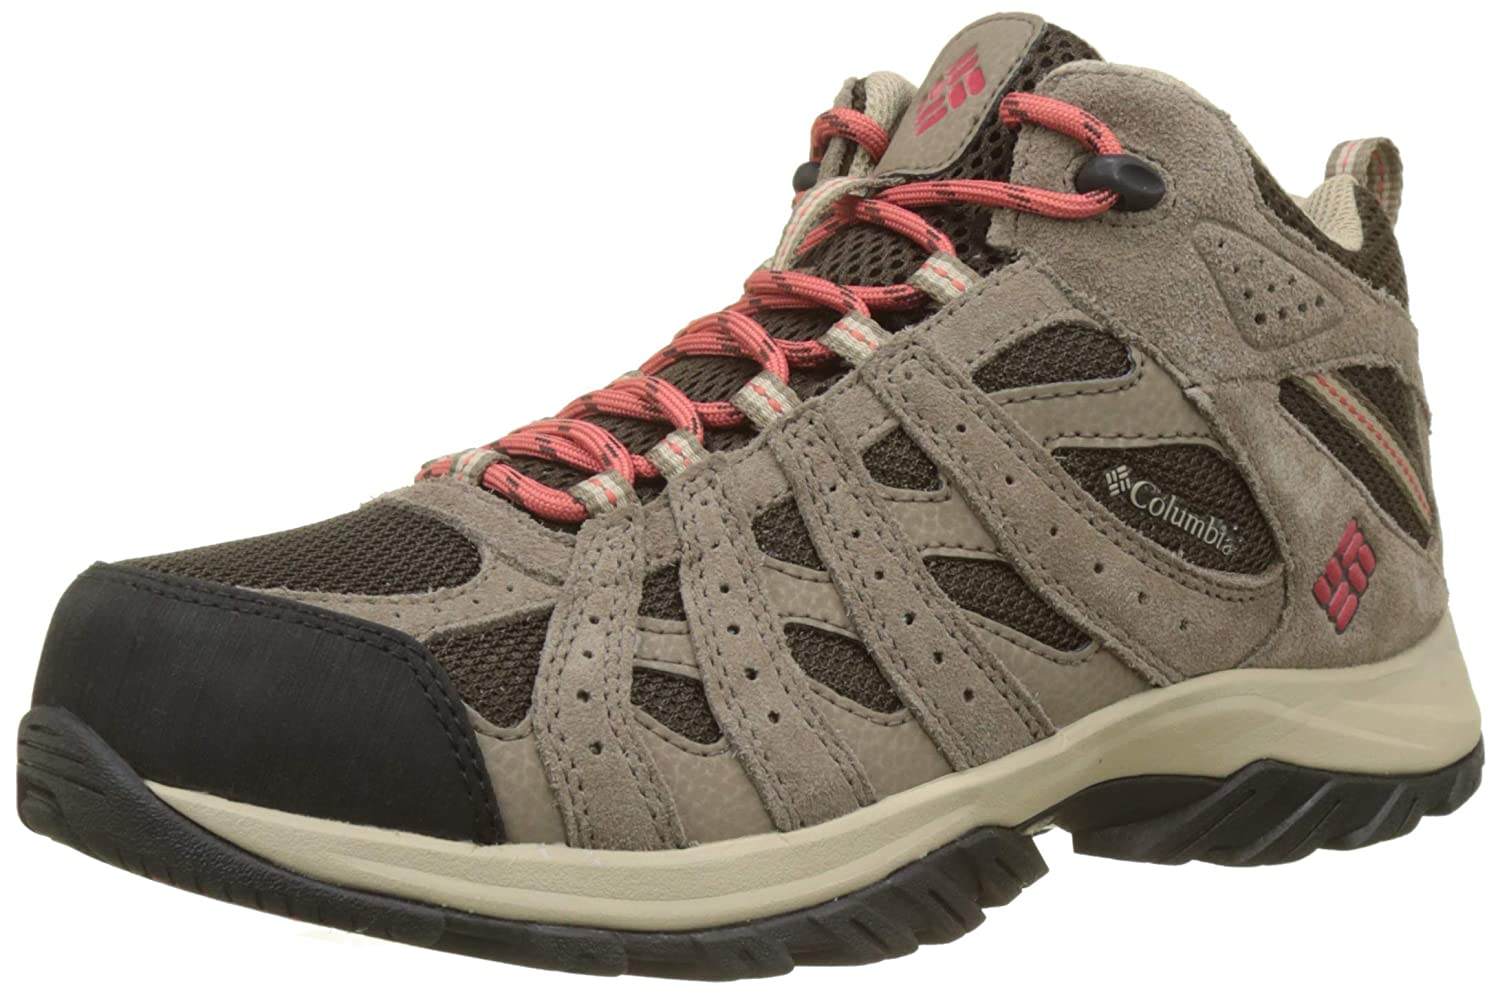 Columbia Canyon Point Mid Waterproof, Chaussures de Randonnée Basses Femme 1813181